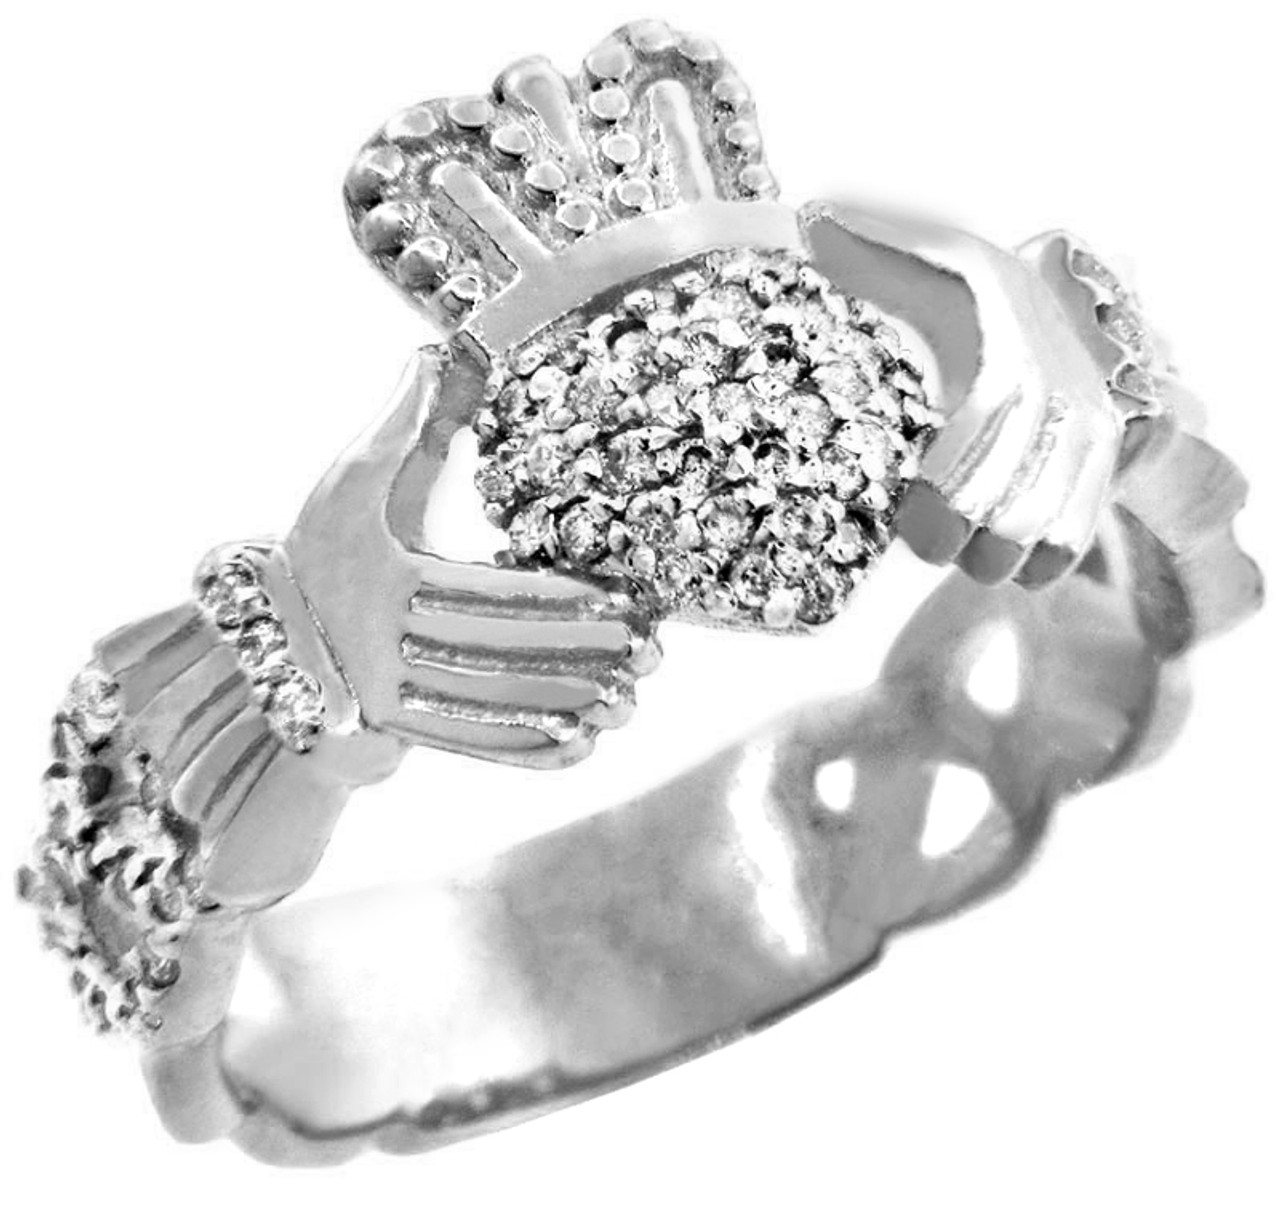 gold claddagh rings white gold diamond claddagh ring 0. Black Bedroom Furniture Sets. Home Design Ideas